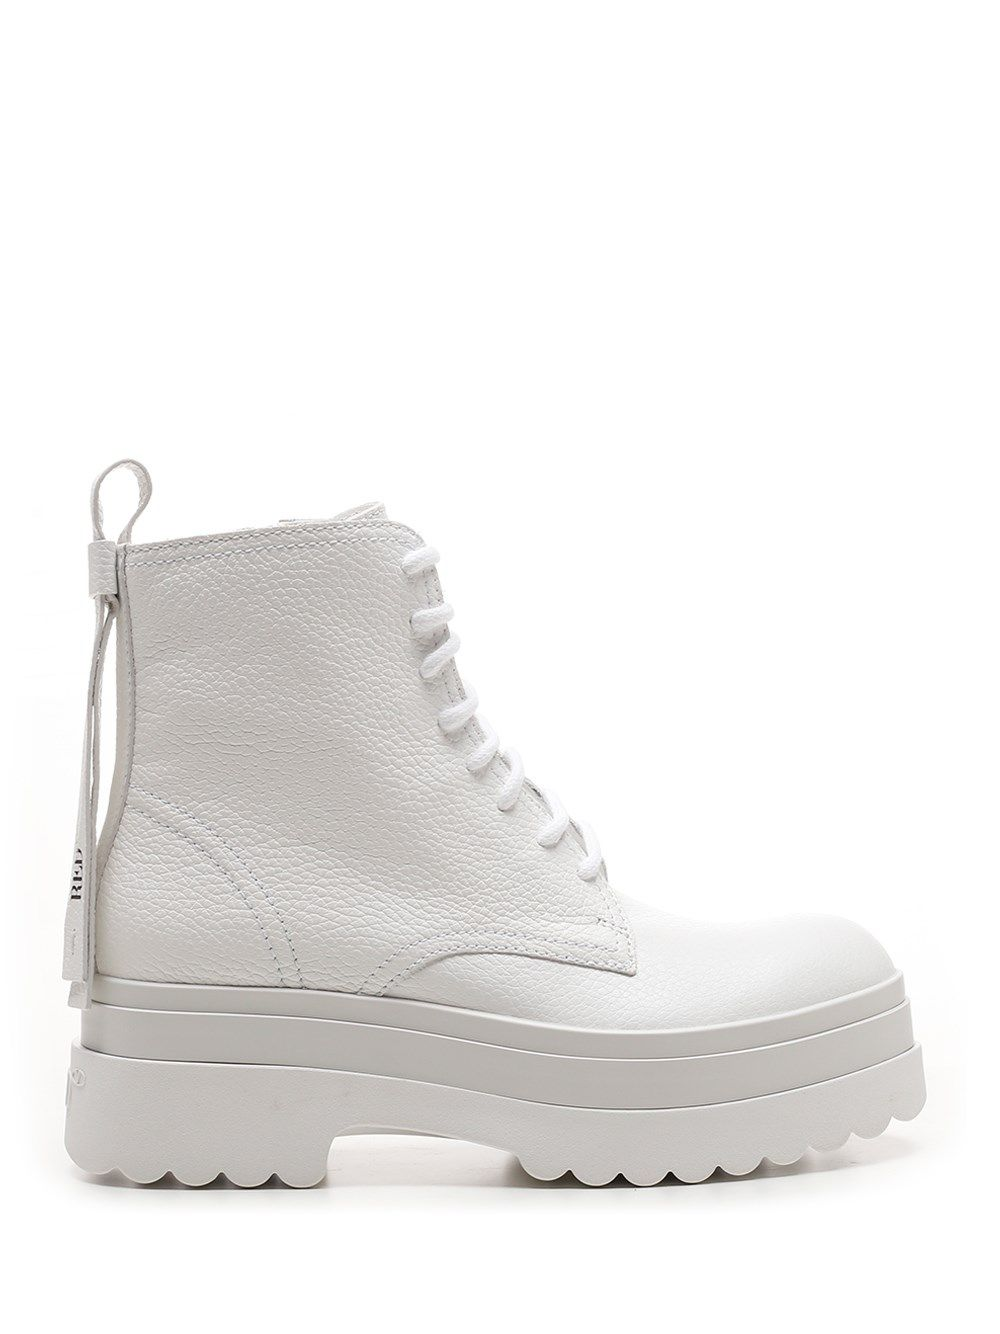 Red Valentino Mid heels RED VALENTINO WOMEN'S WHITE OTHER MATERIALS BOOTS